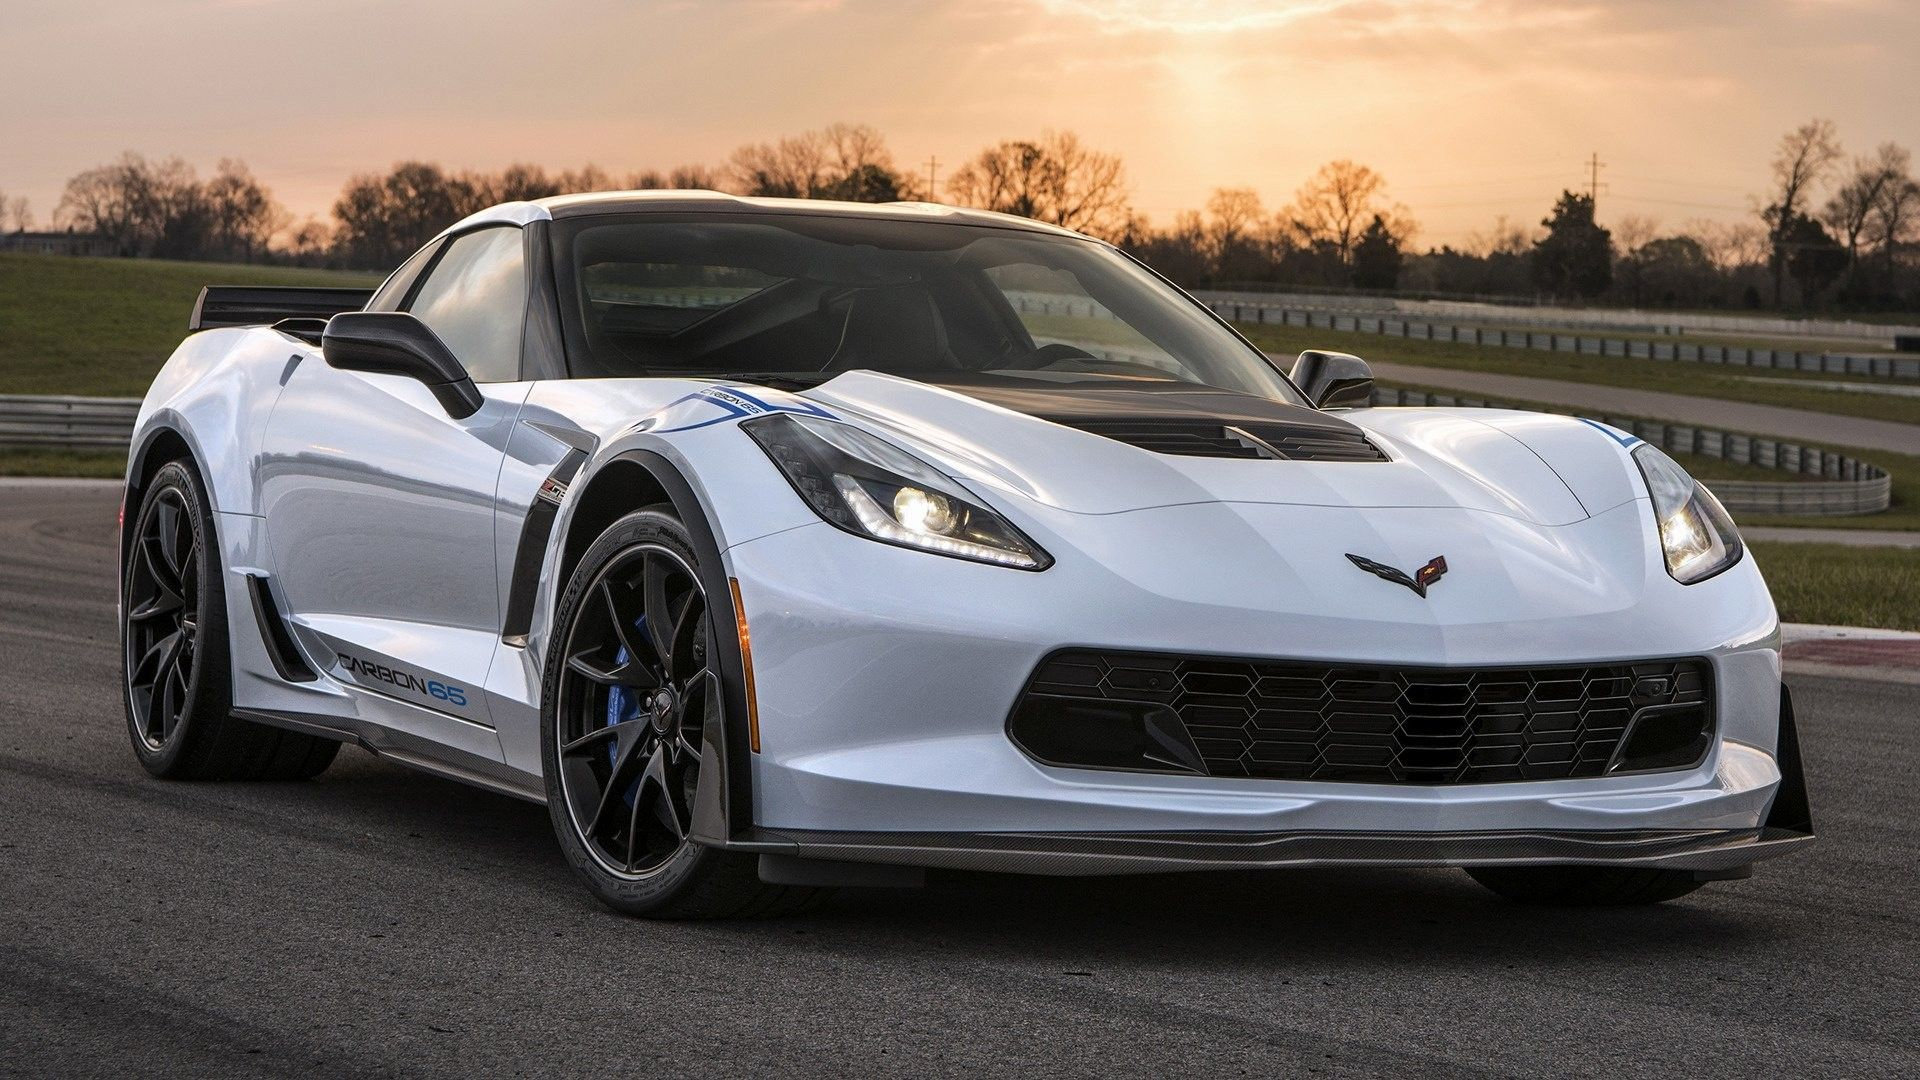 White Corvette Wallpapers